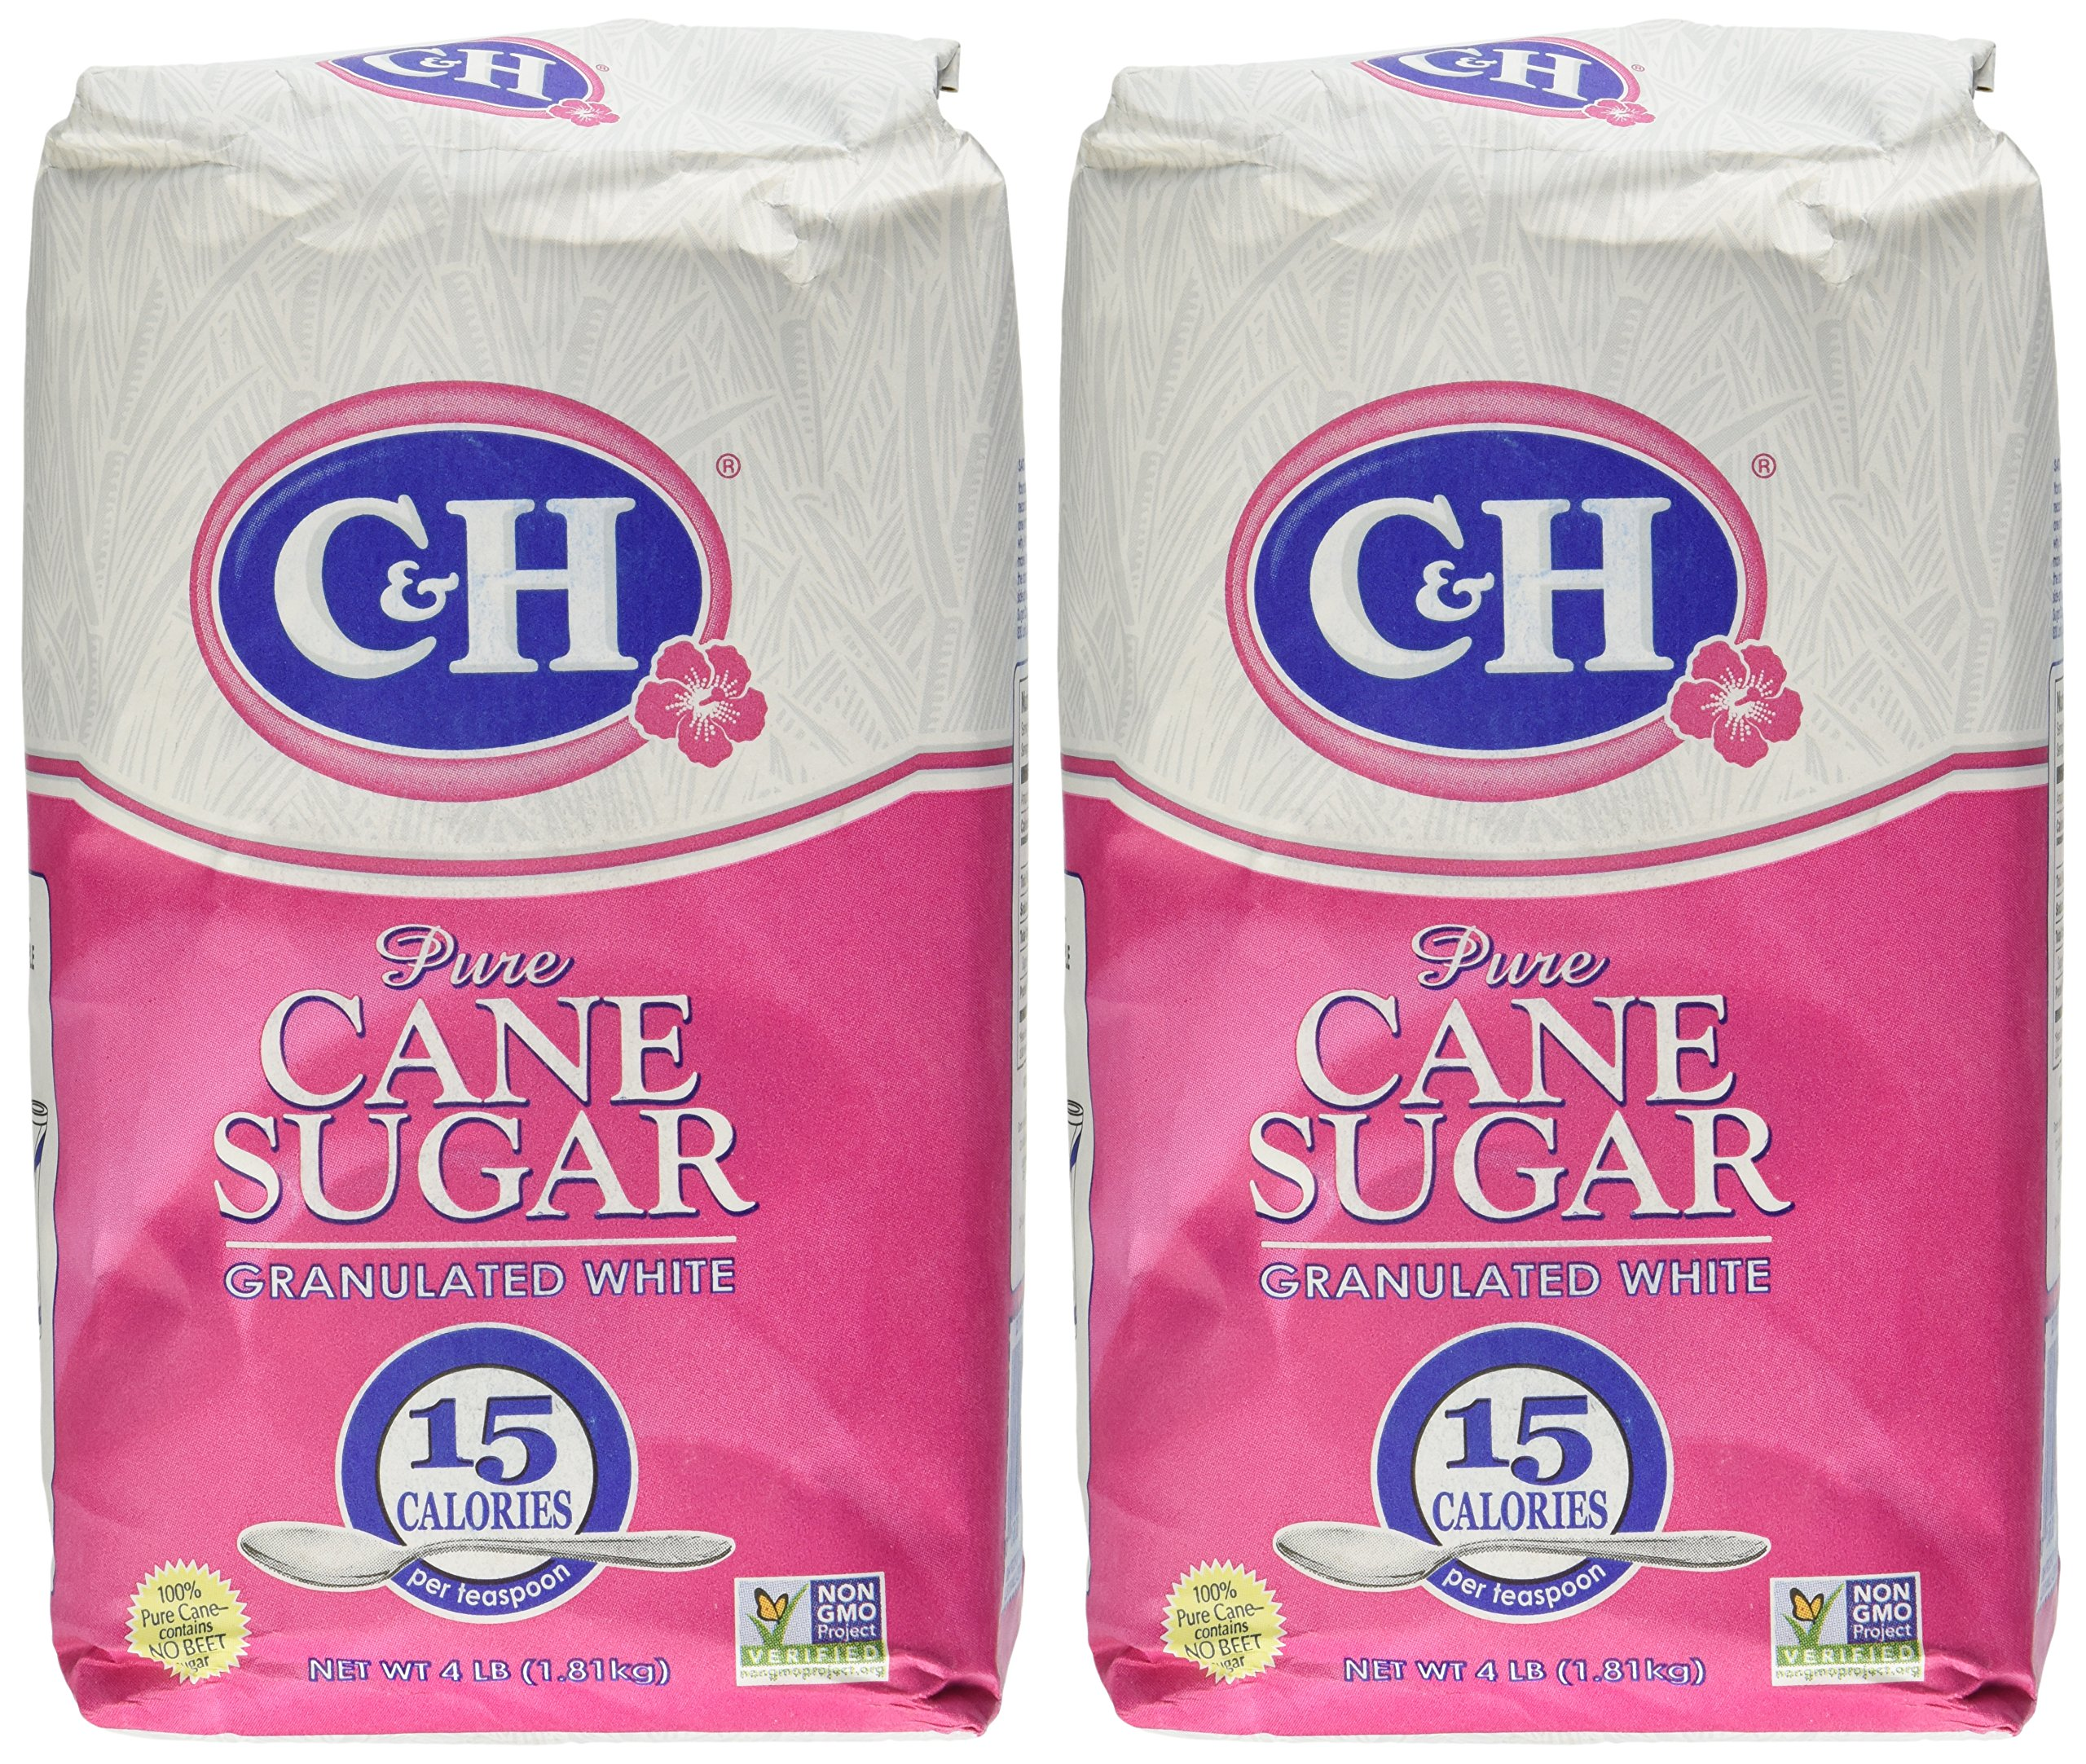 C&H, Cane Sugar, Granulated White, 4 Pound Bag (Pack of 2)